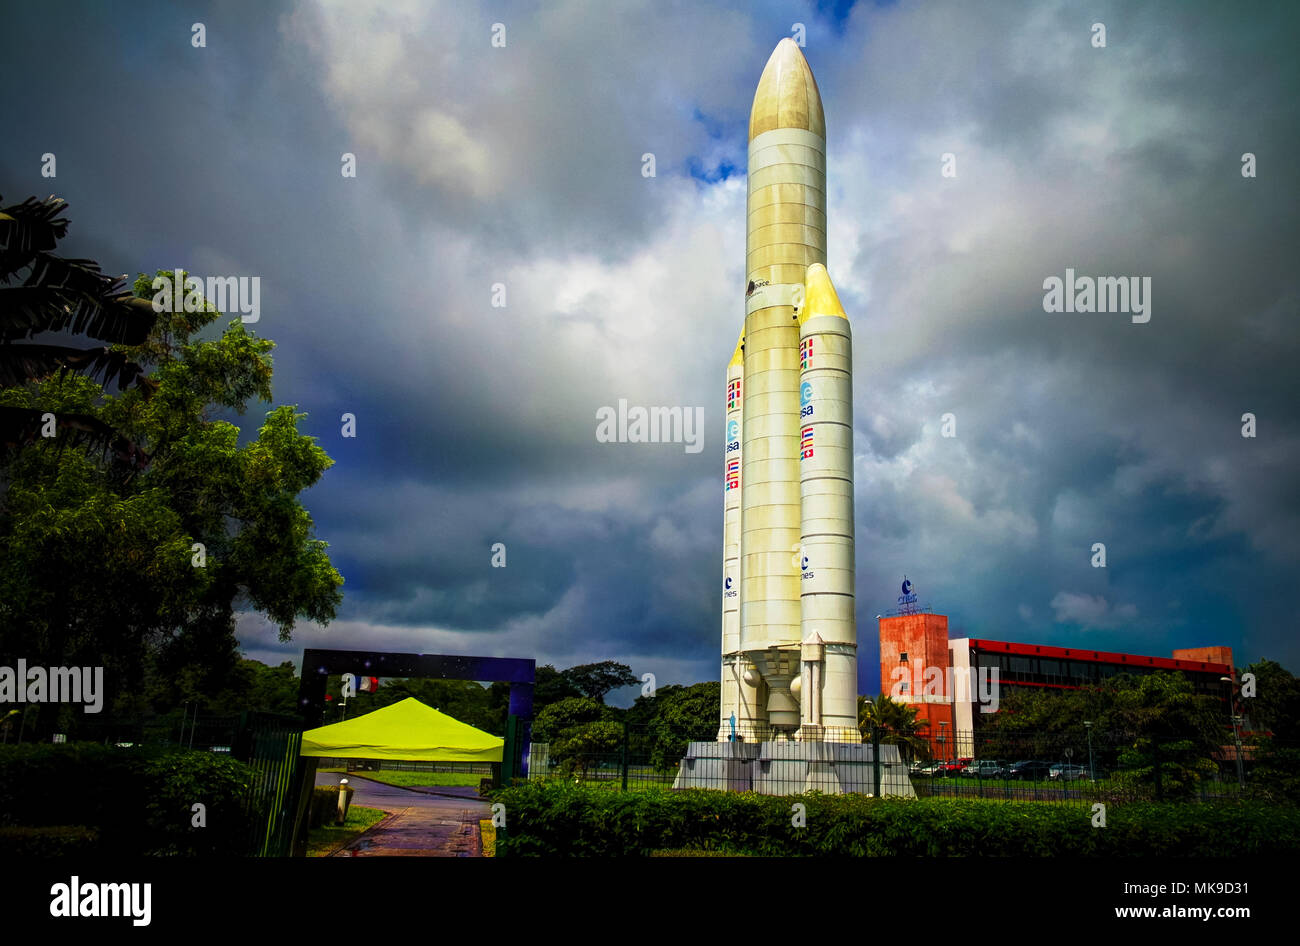 space rocket monument inside Guiana Space Centre 07.05.2013 Kourou, French Guiana - Stock Image